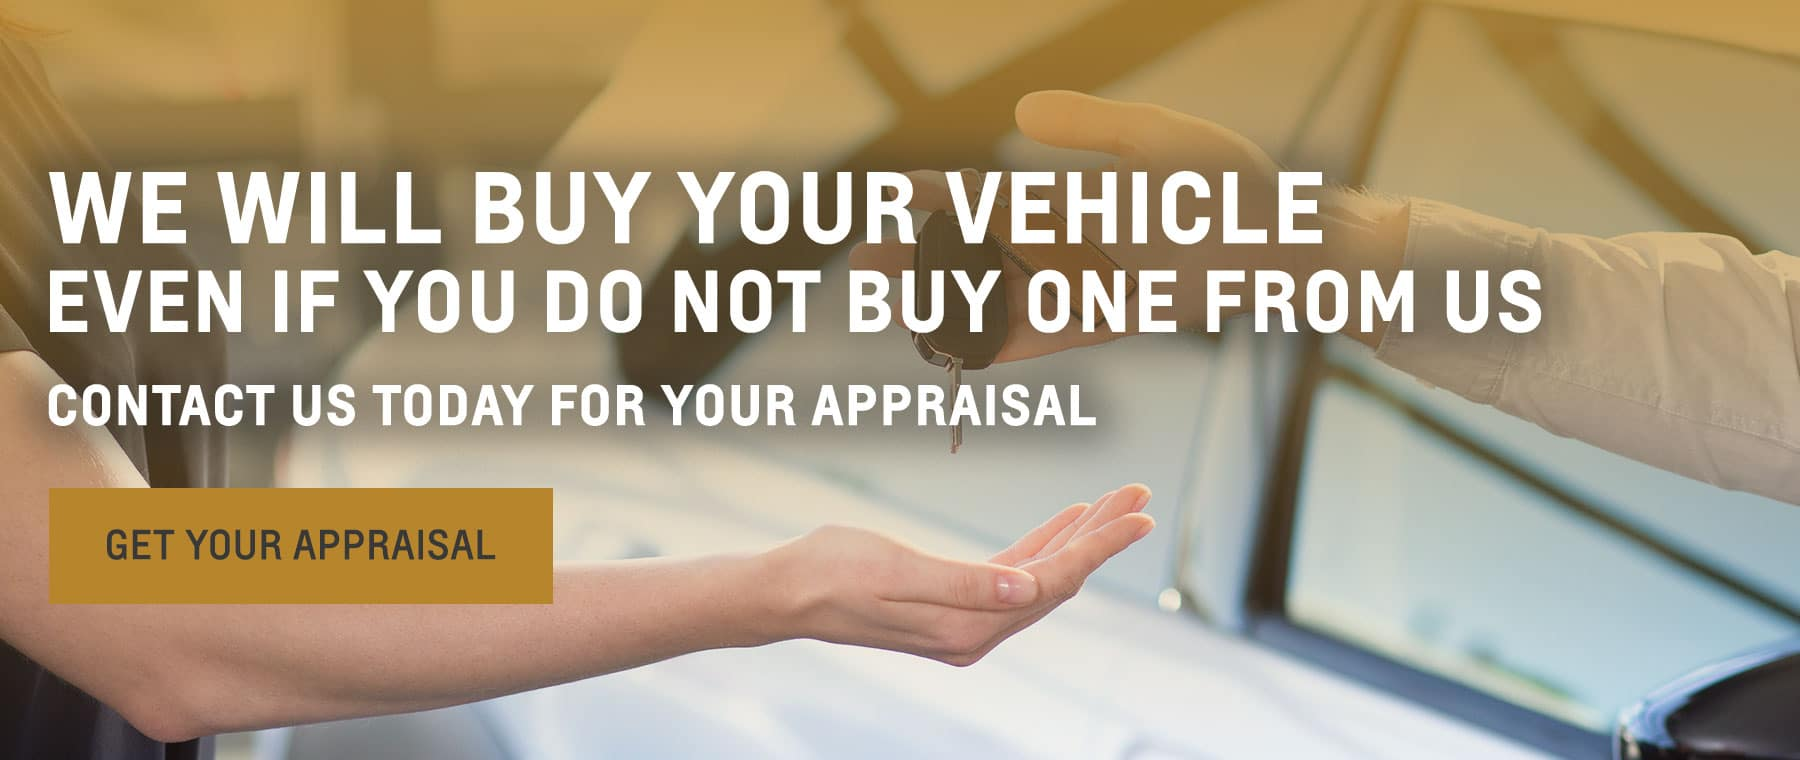 We will buy your vehicle even if you do not buy one from us